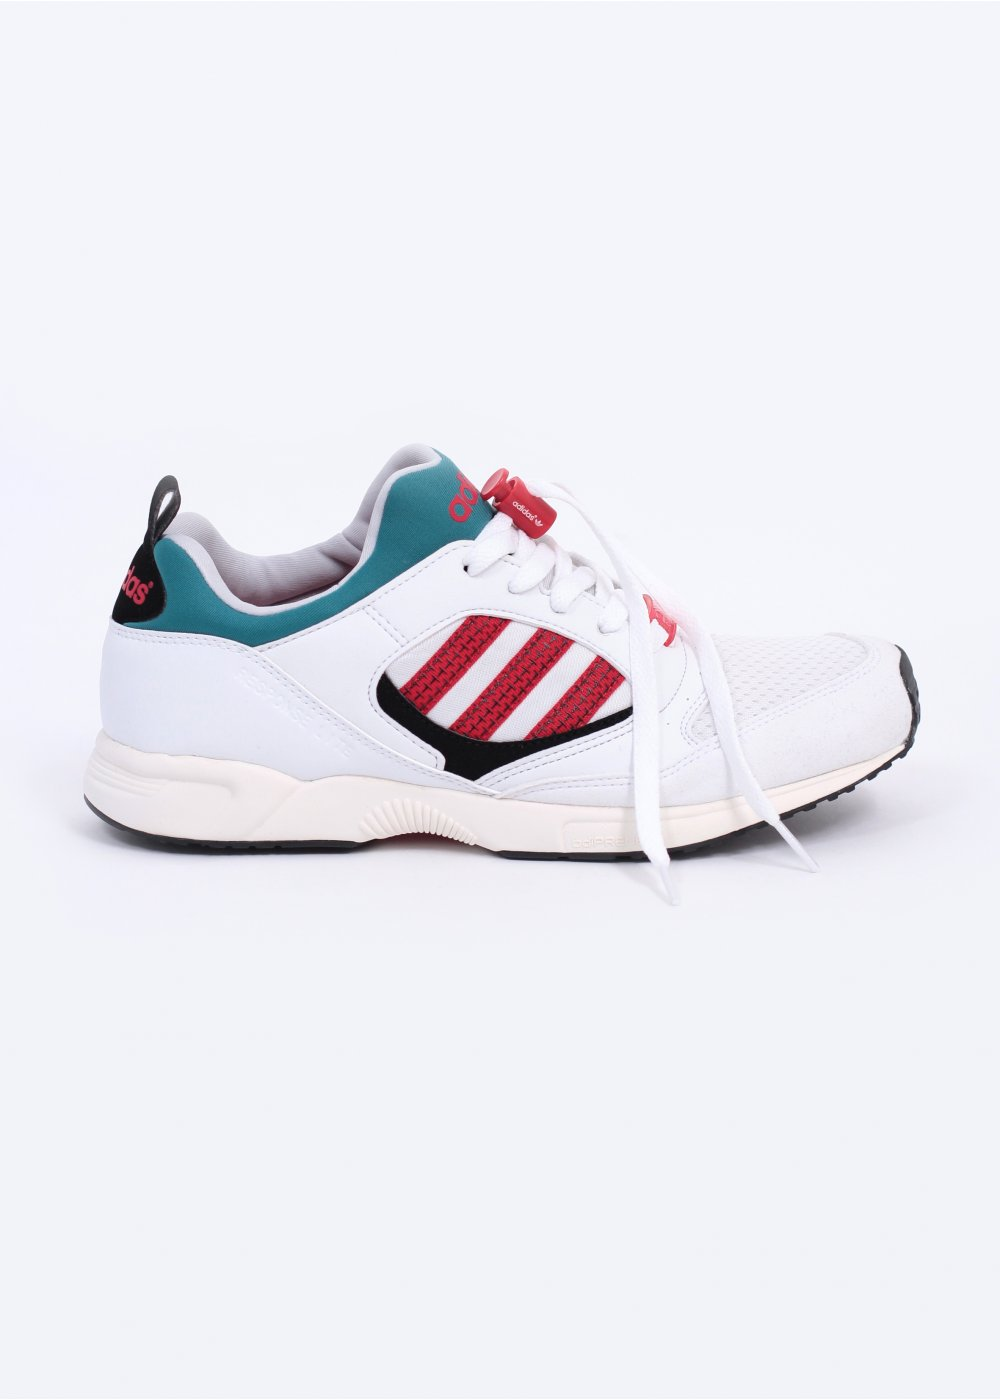 quality design a6bc1 1a07a adidas Originals Footwear Torsion Response Trainers - White / Red